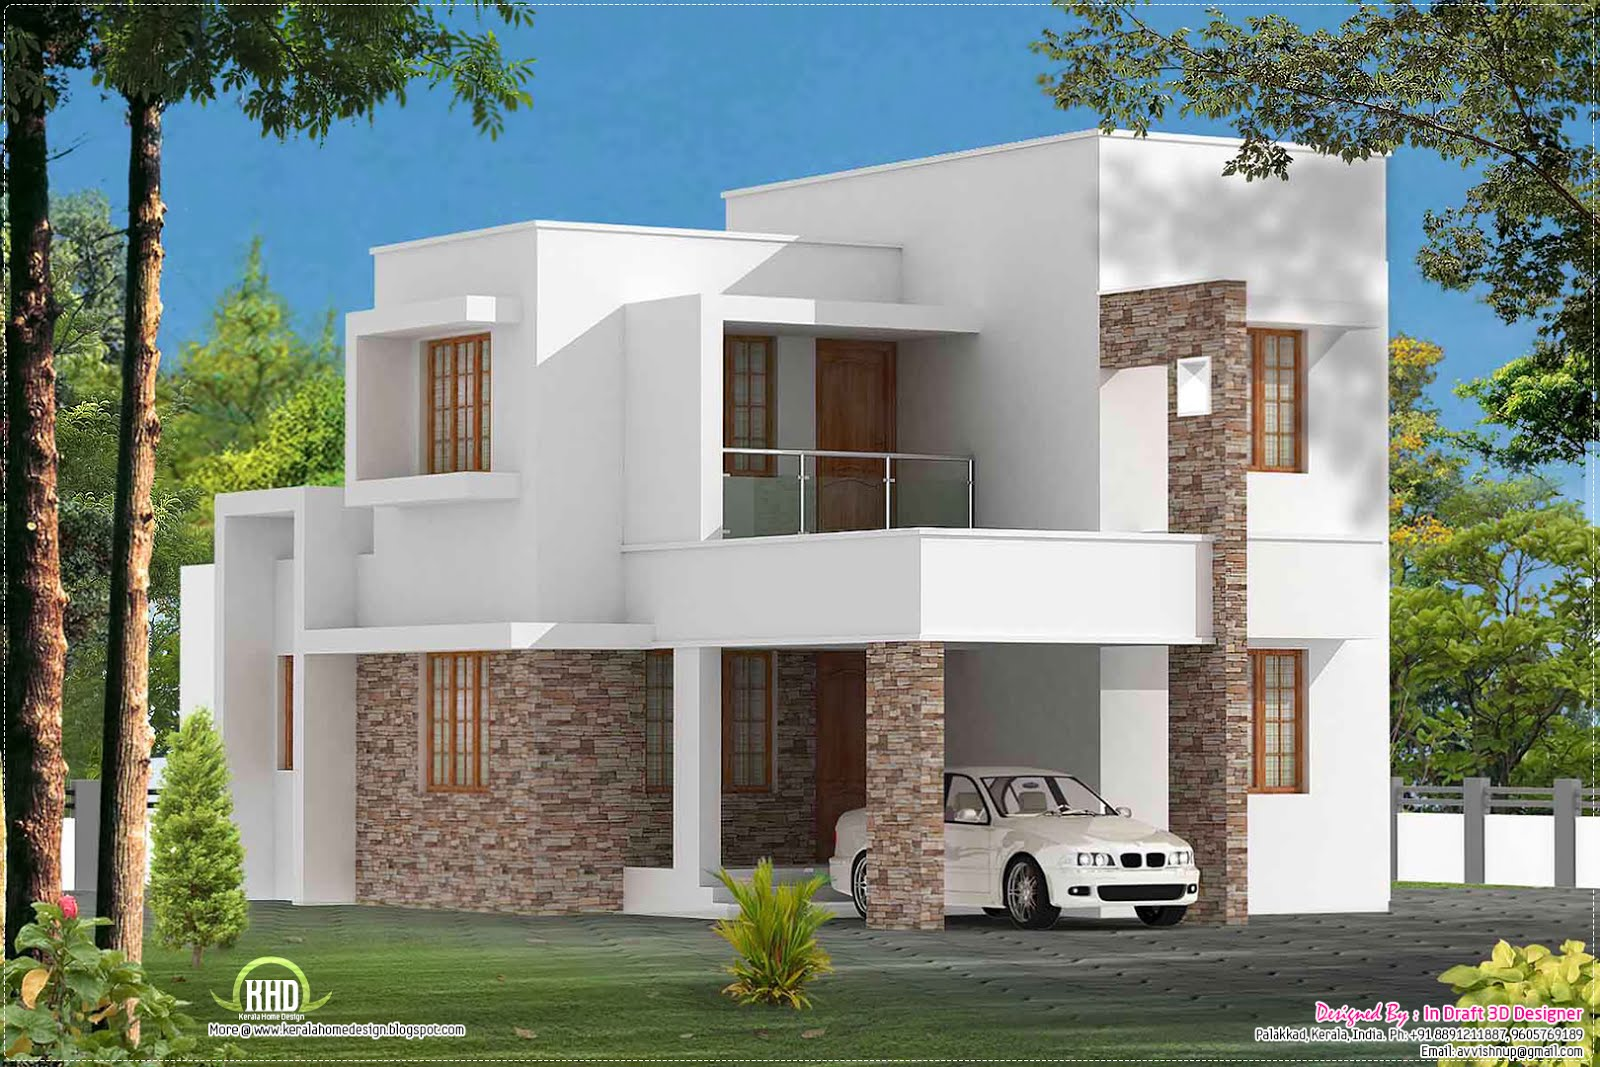 Simple 3 bed room contemporary villa kerala home design for Simple house design